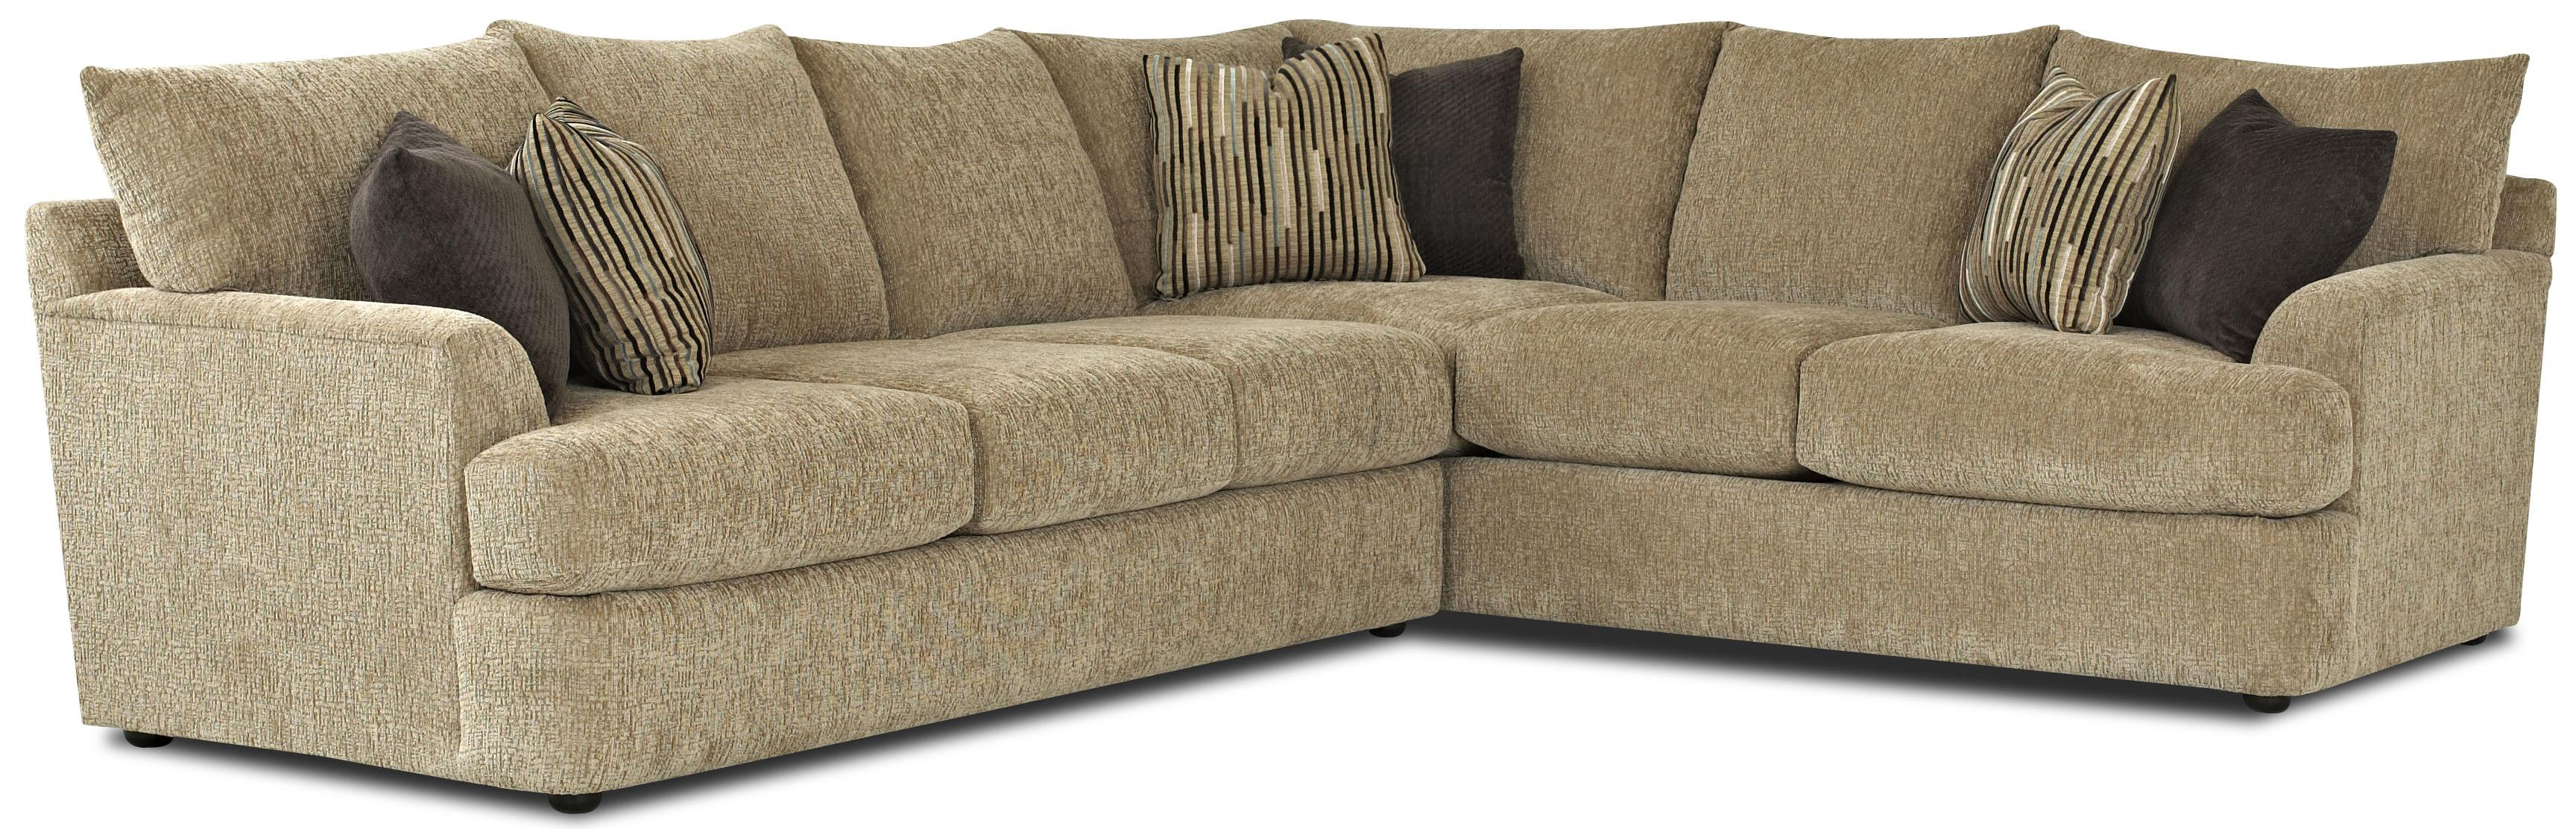 Findley Sectional by Klaussner at Johnny Janosik